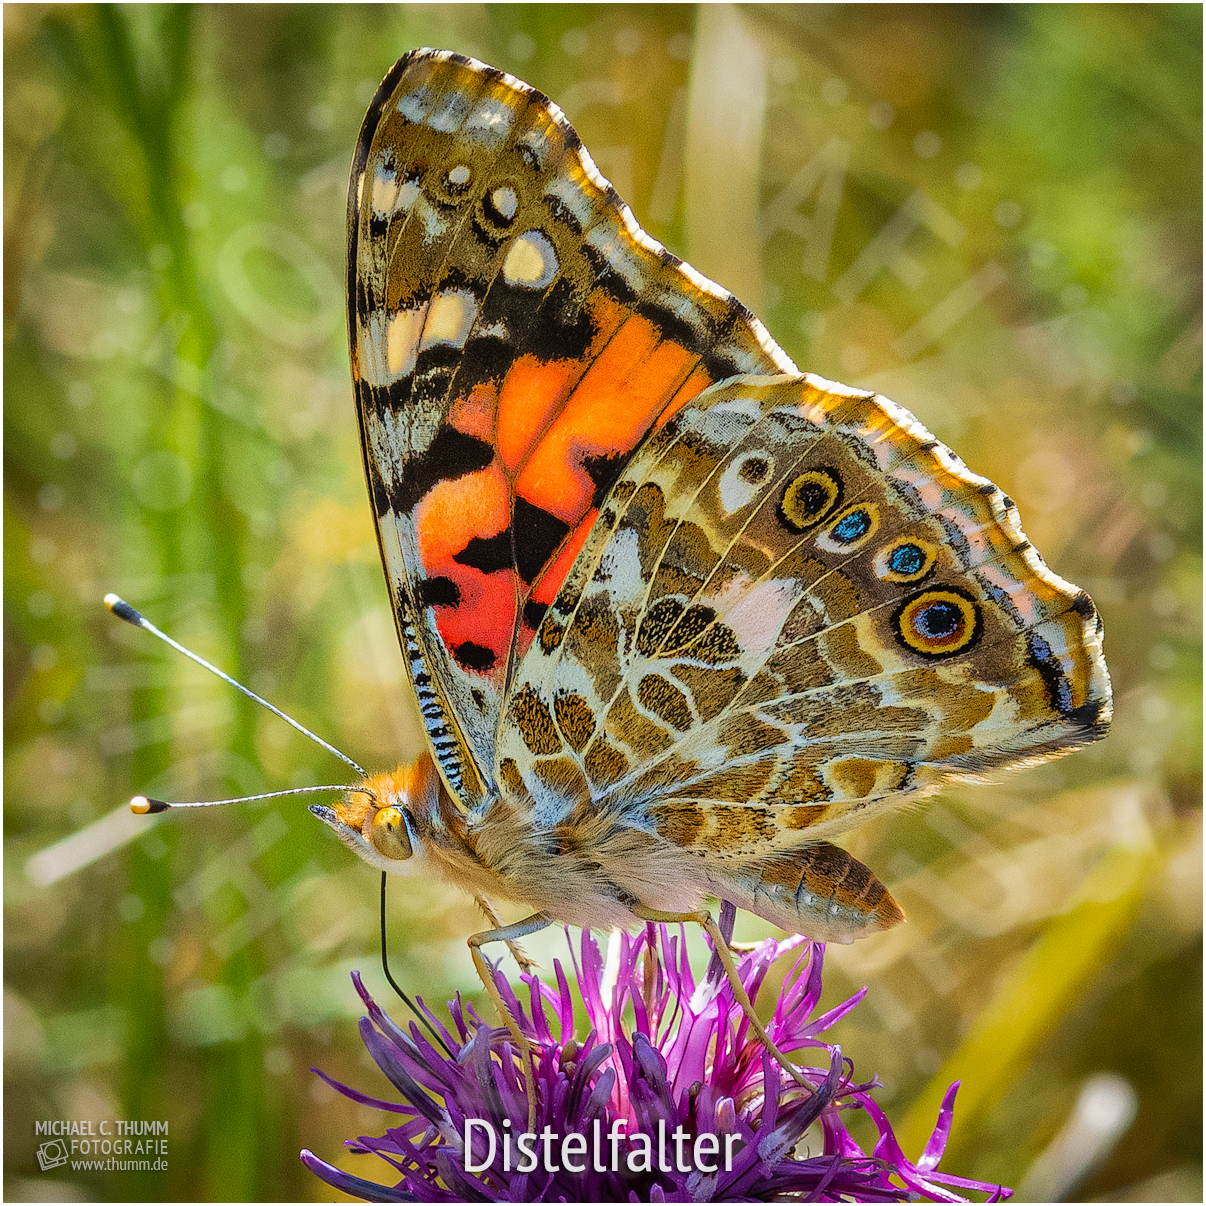 Distelfalter - © Michael C. Thumm